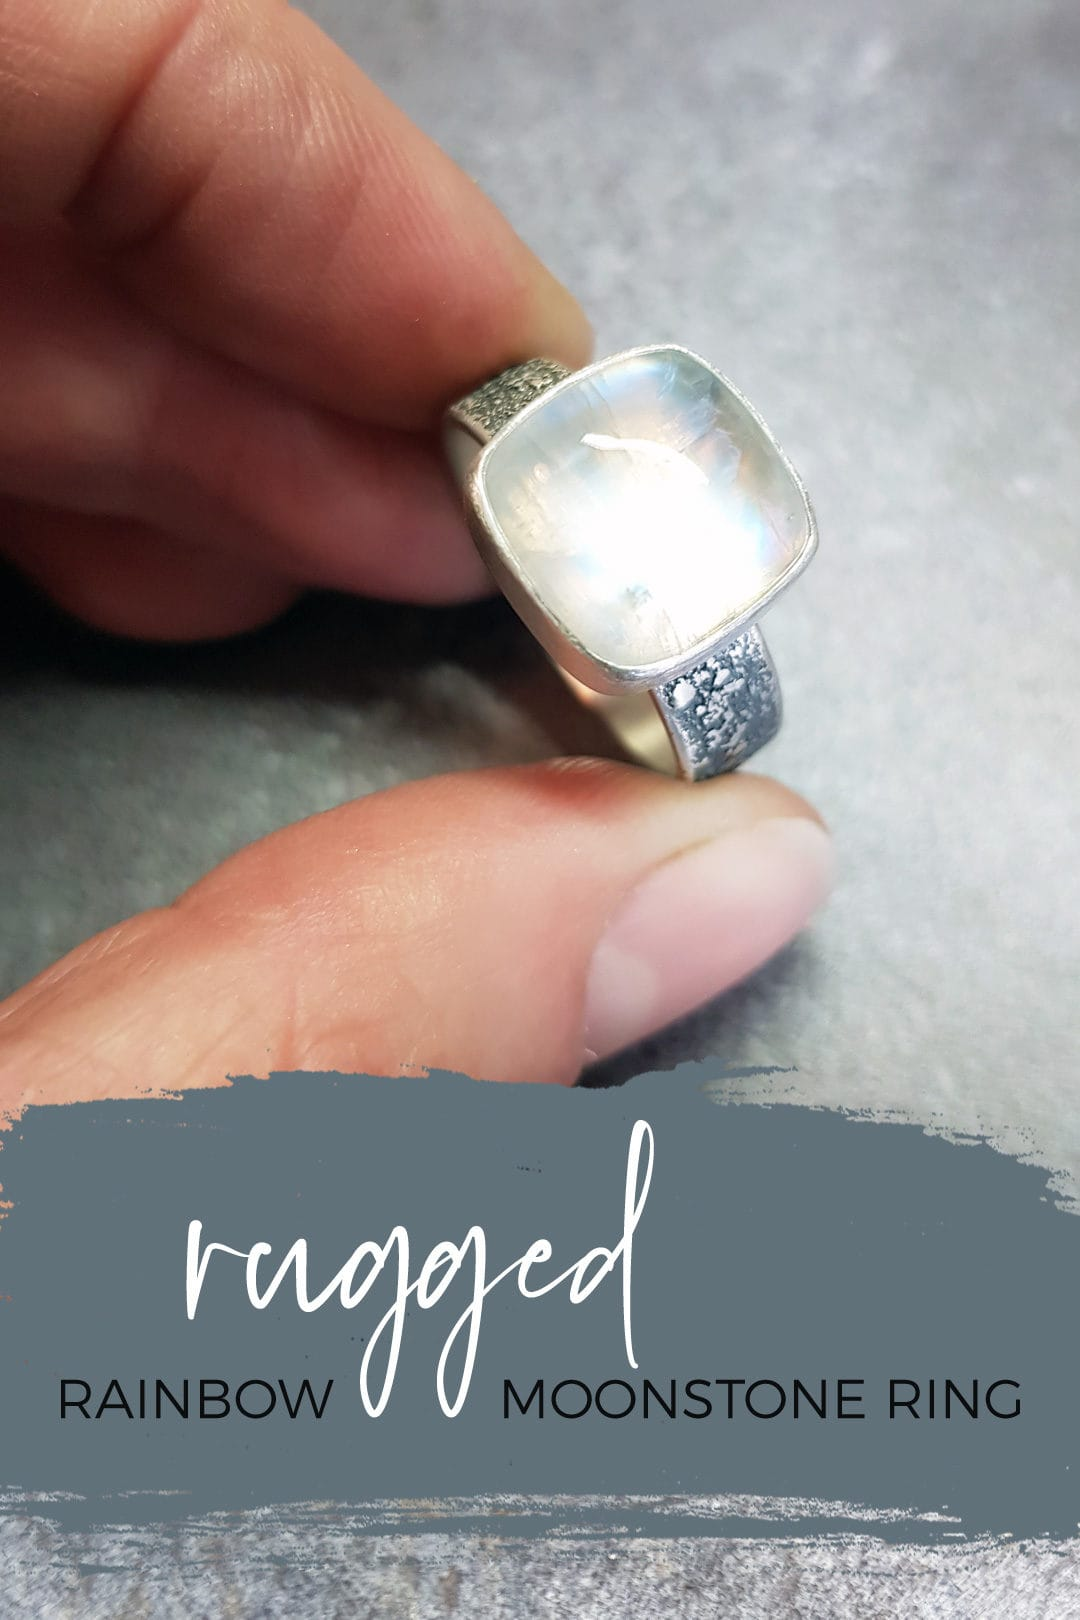 Rugged Rainbow Moonstone ring in textured sterling silver